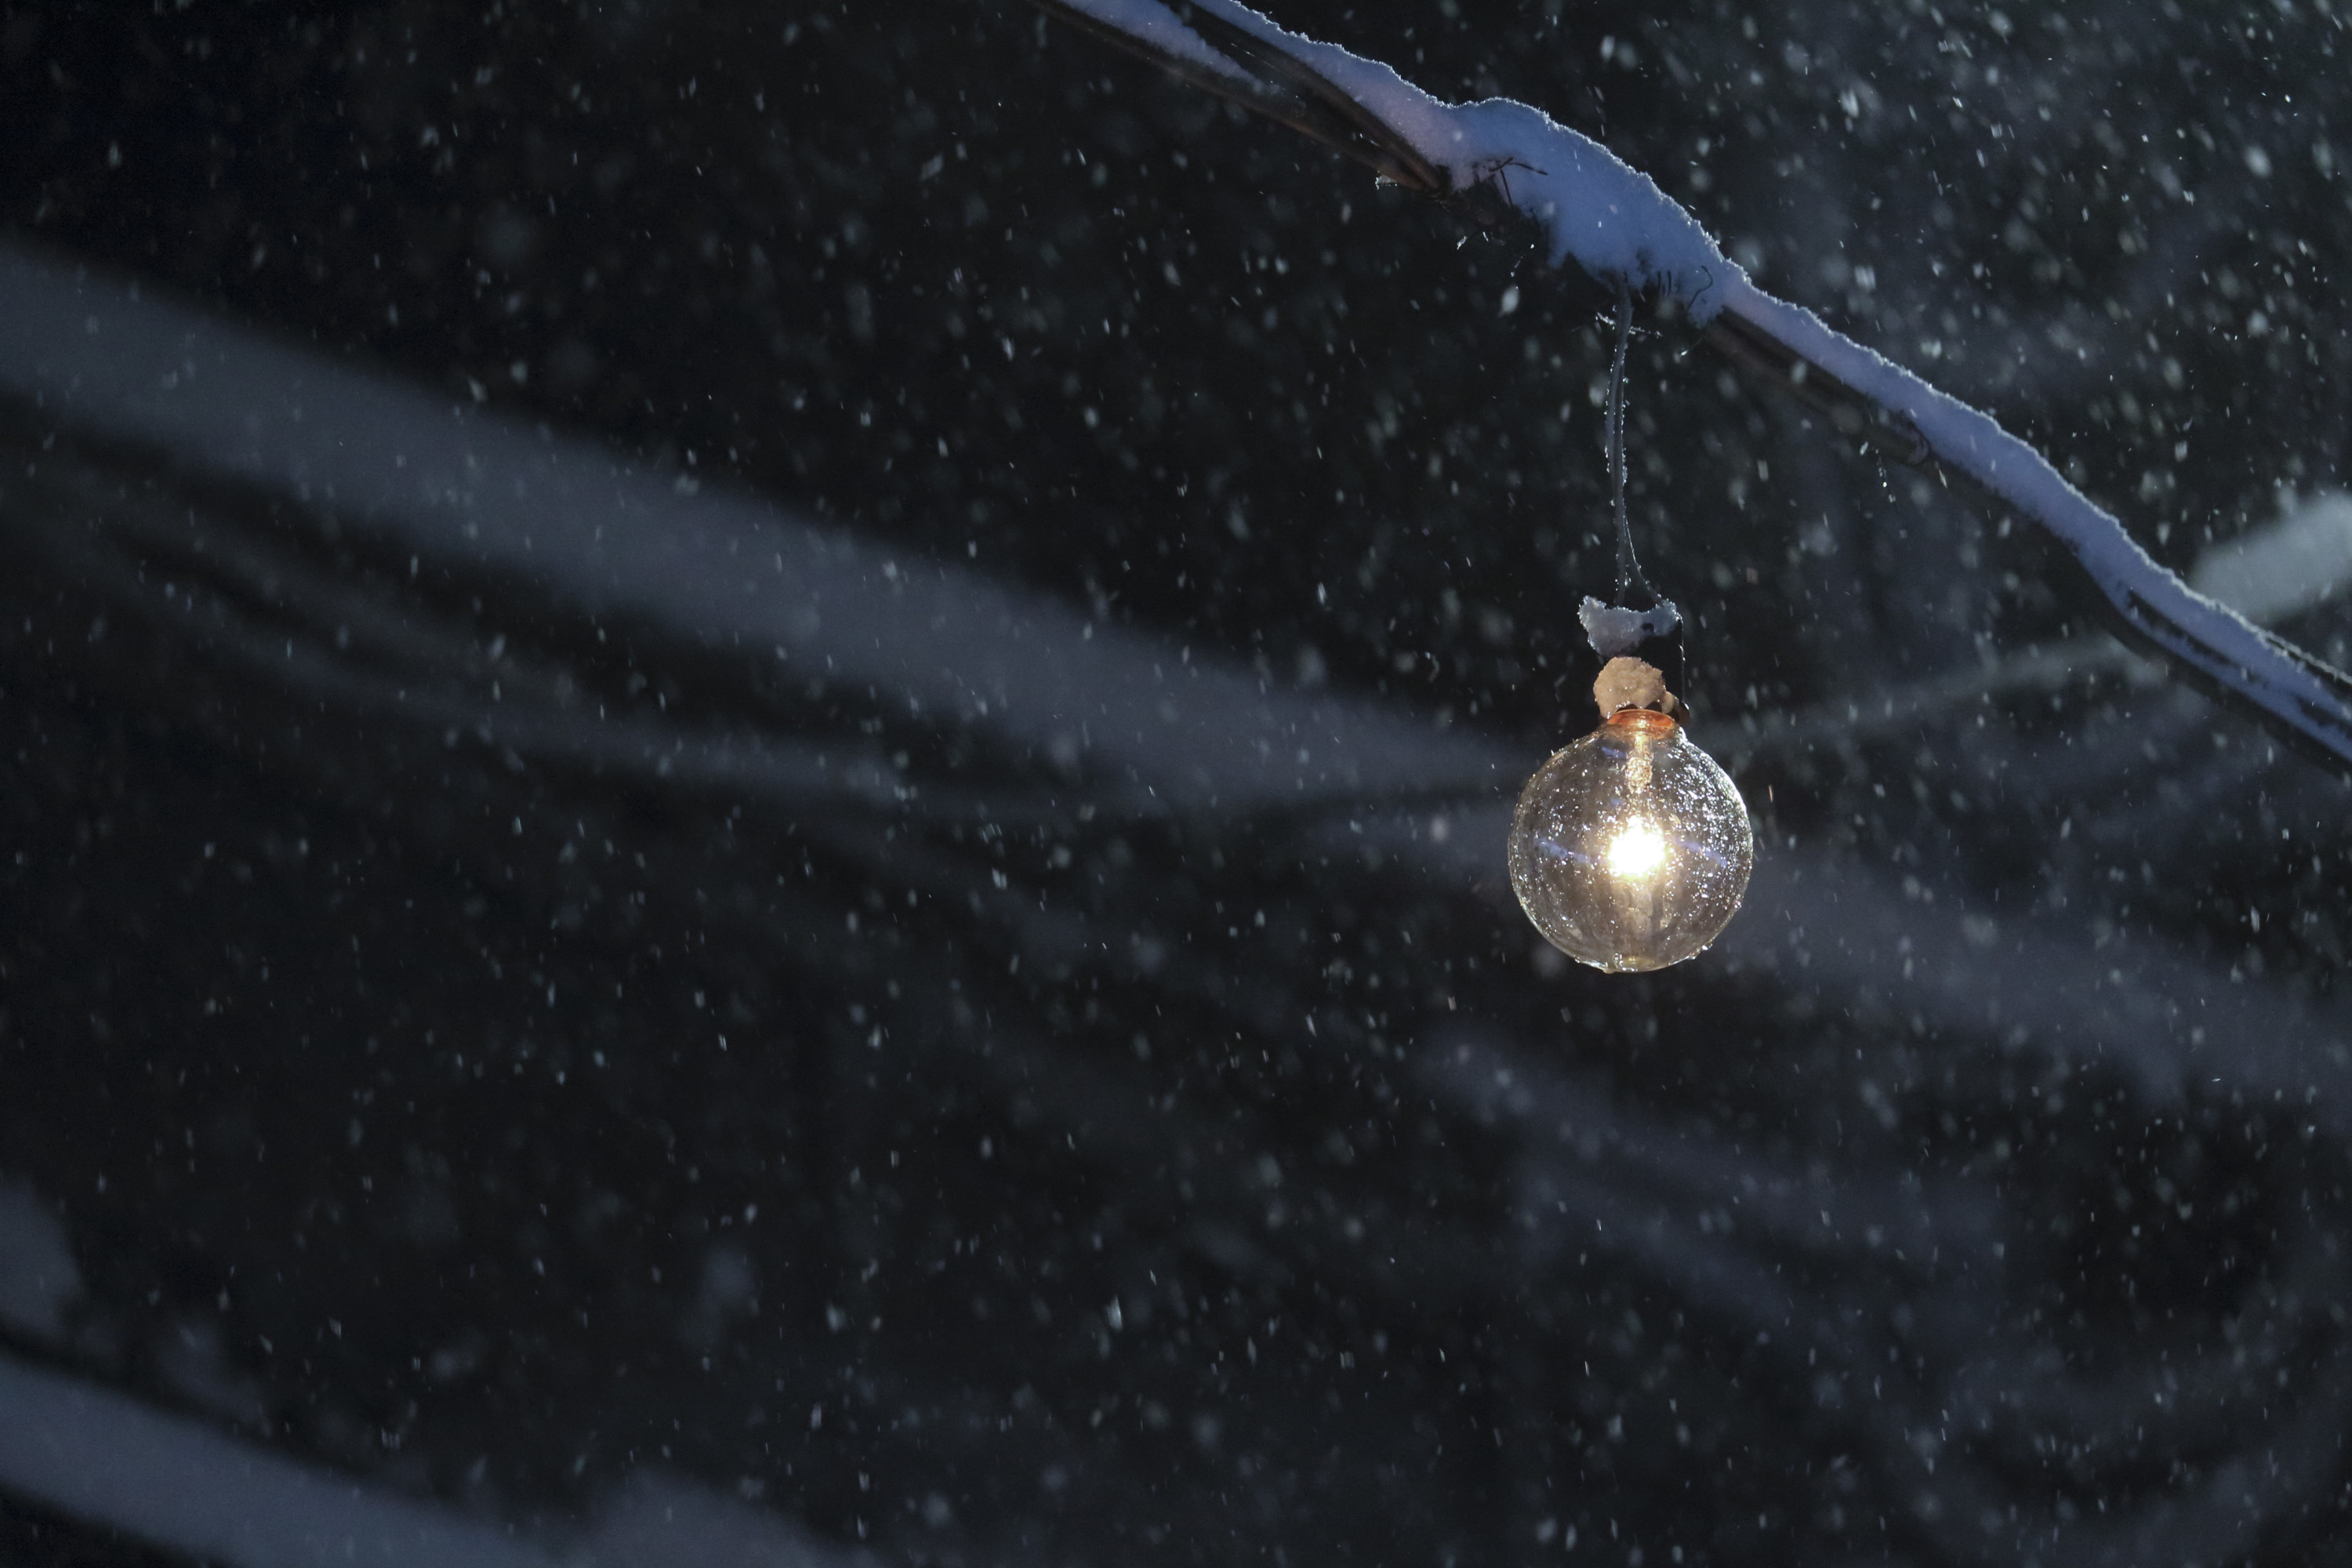 lighting-in-the-snowstorm-002